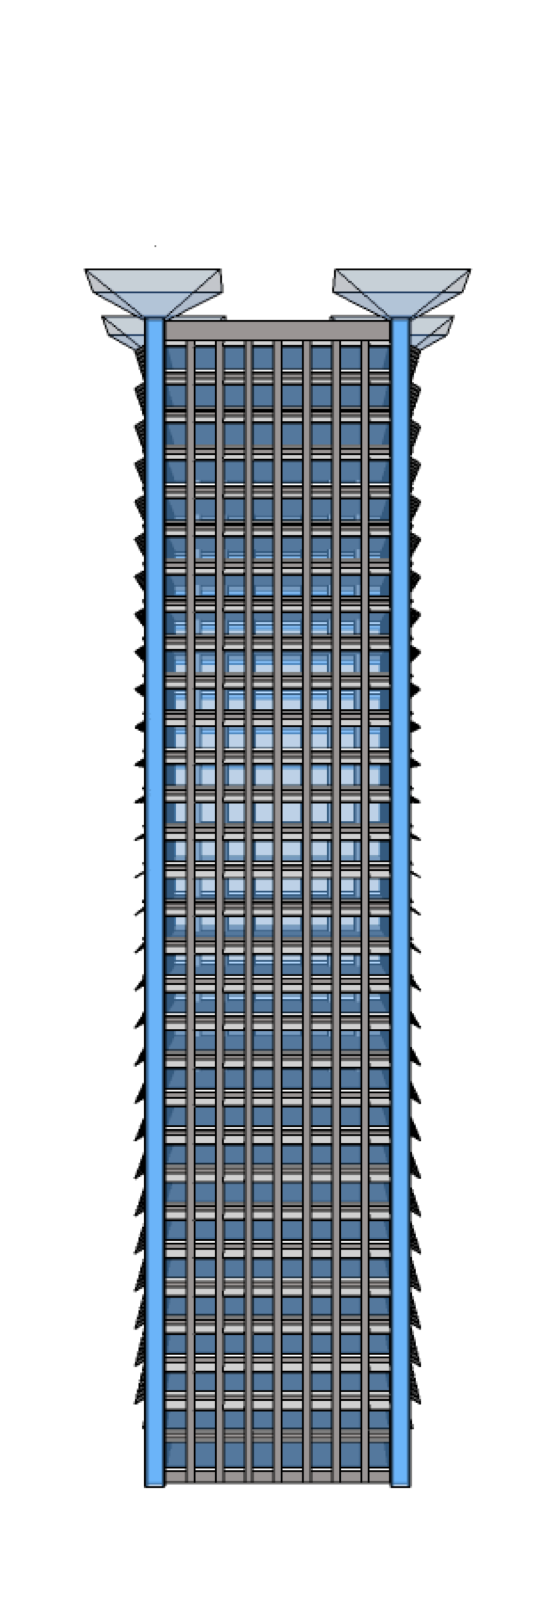 Home garden and skyscraper. Tower clipart power tower